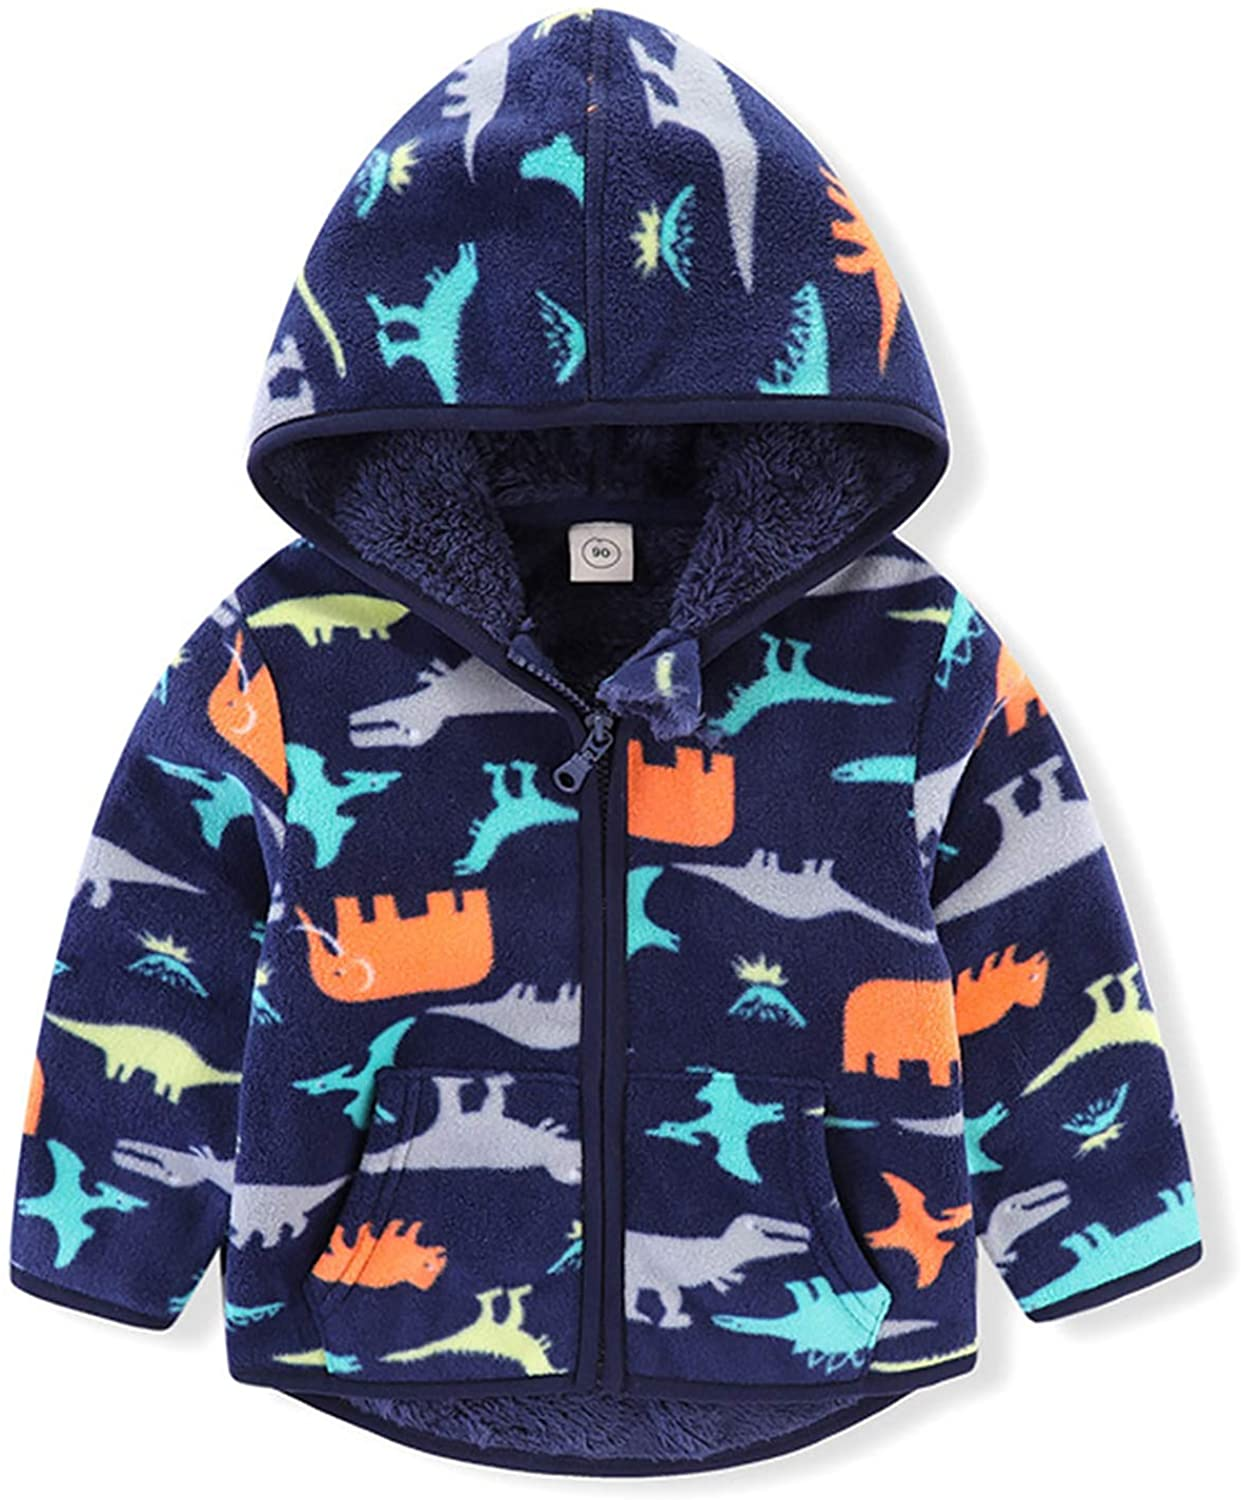 IDOPIP Fleece Jacket with Hoodies for Toddler Kids Baby Boy Girl Cartoon Dinosaur Car Print Coat Winter Thick Warm Outerwear